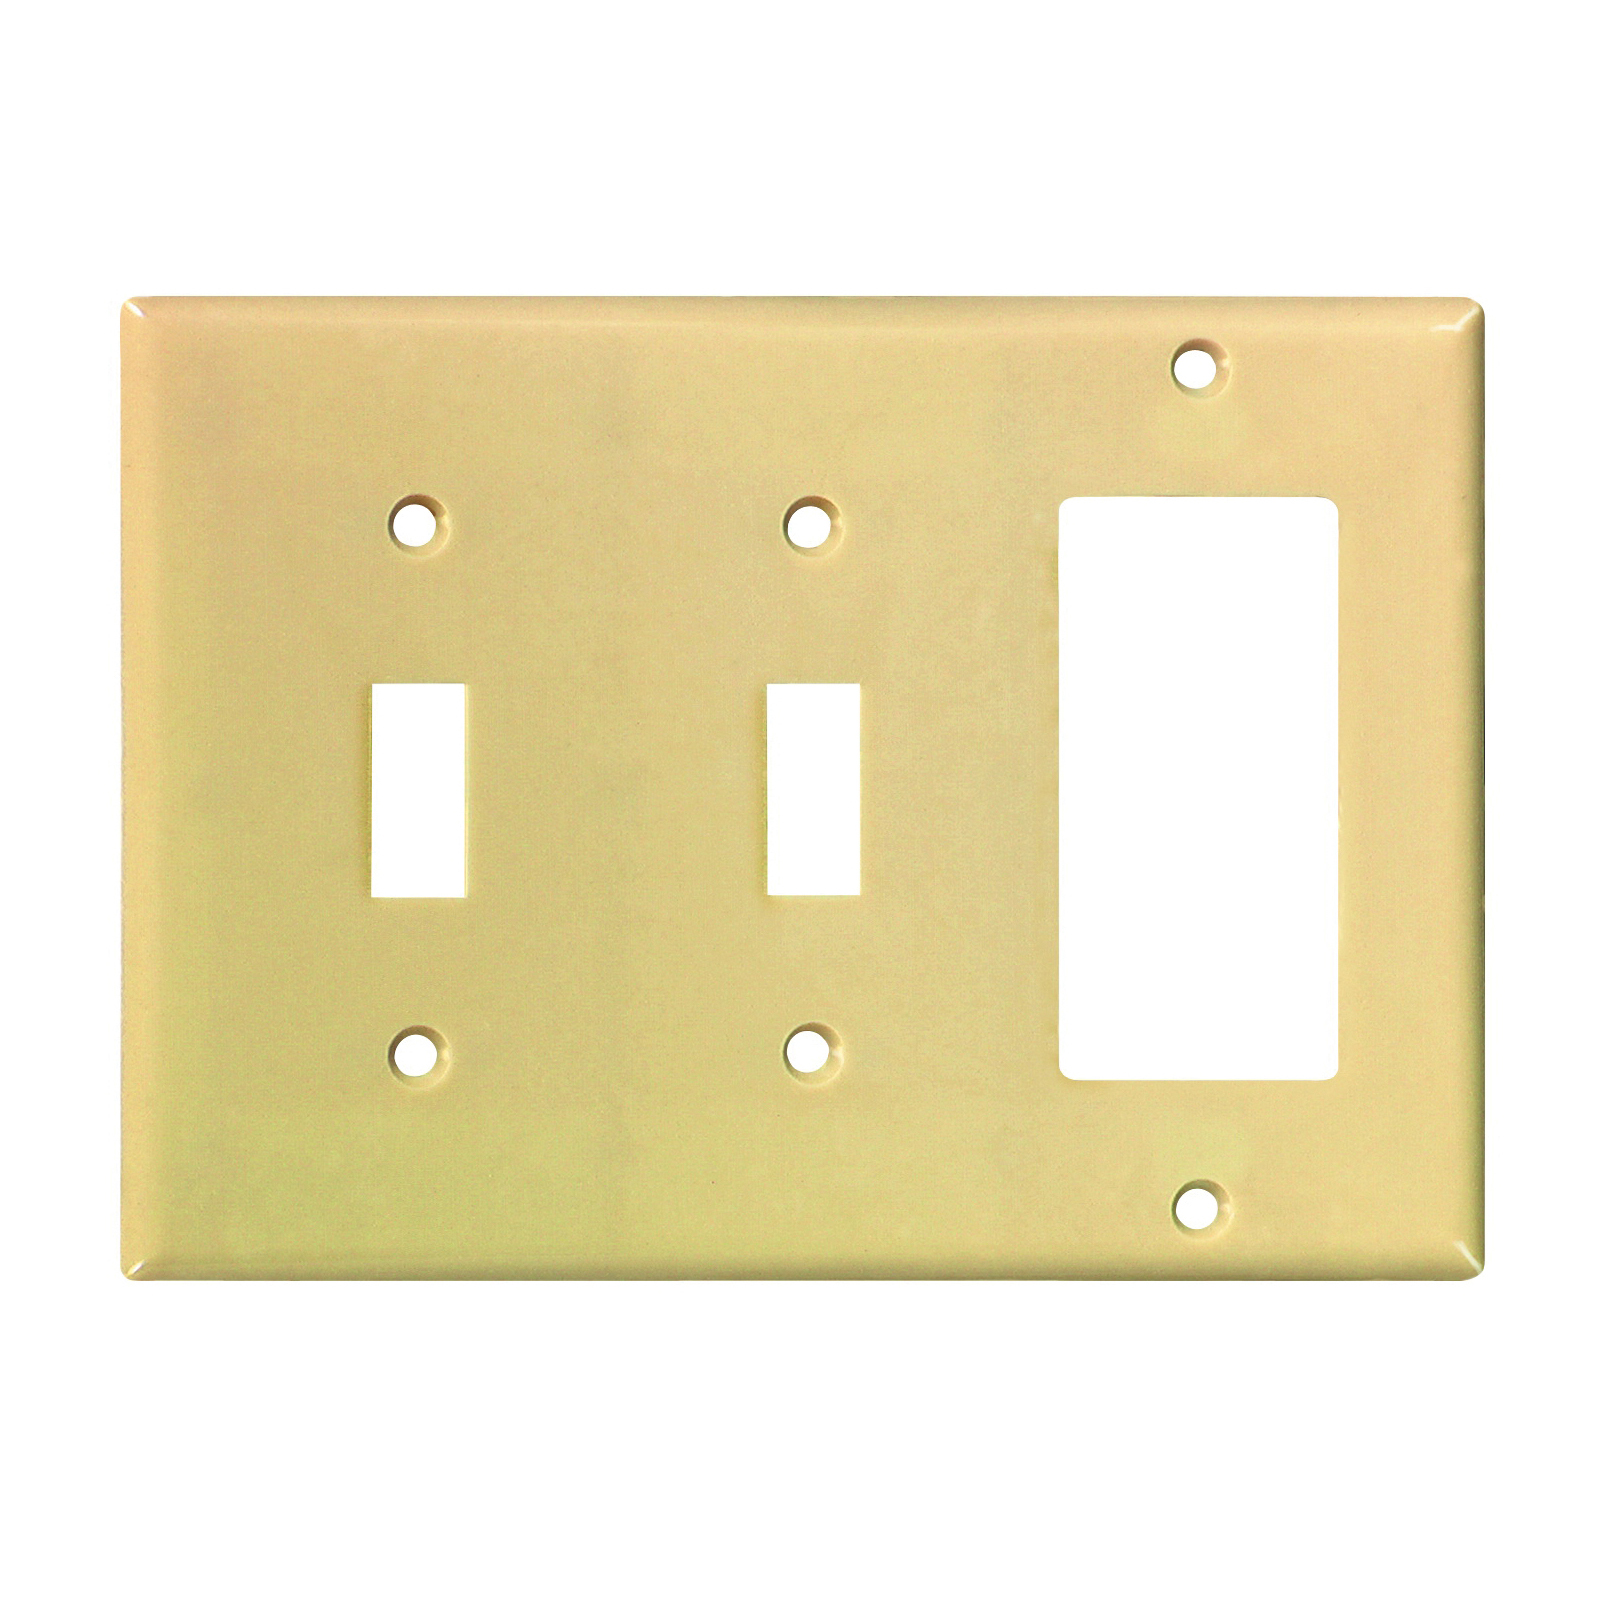 Picture of Eaton Wiring Devices 2173V-BOX Wallplate, 4-1/2 in L, 6-3/8 in W, 3-Gang, Thermoset, Ivory, High-Gloss